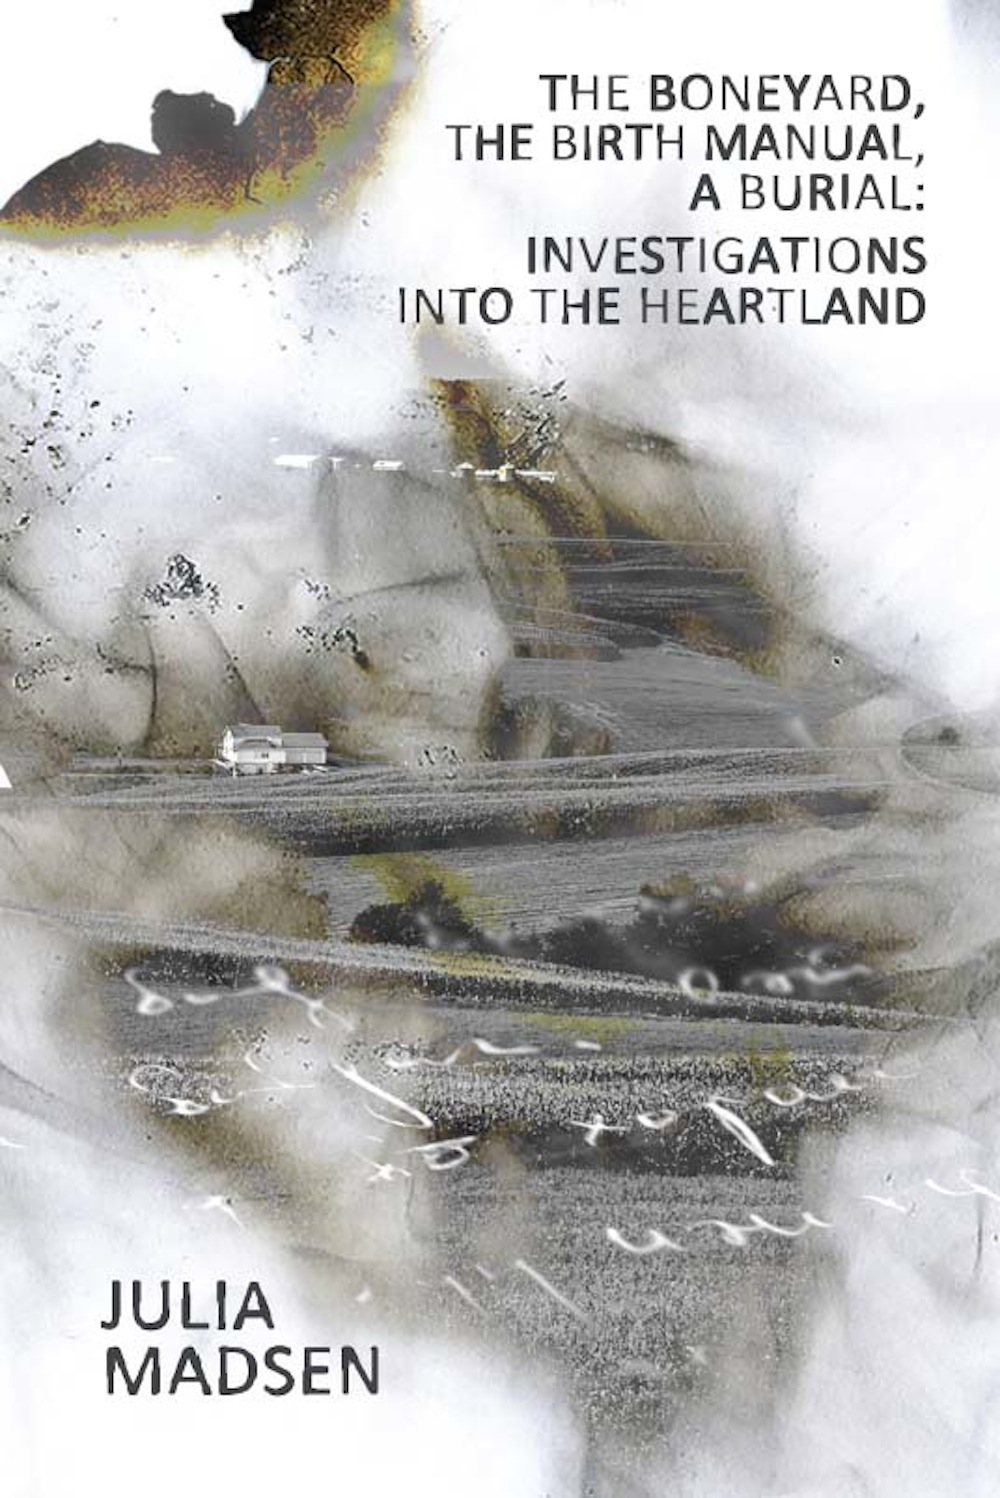 THE BONEYARD, THE BIRTH MANUAL, A BURIAL: INVESTIGATIONS INTO THE HEARTLAND